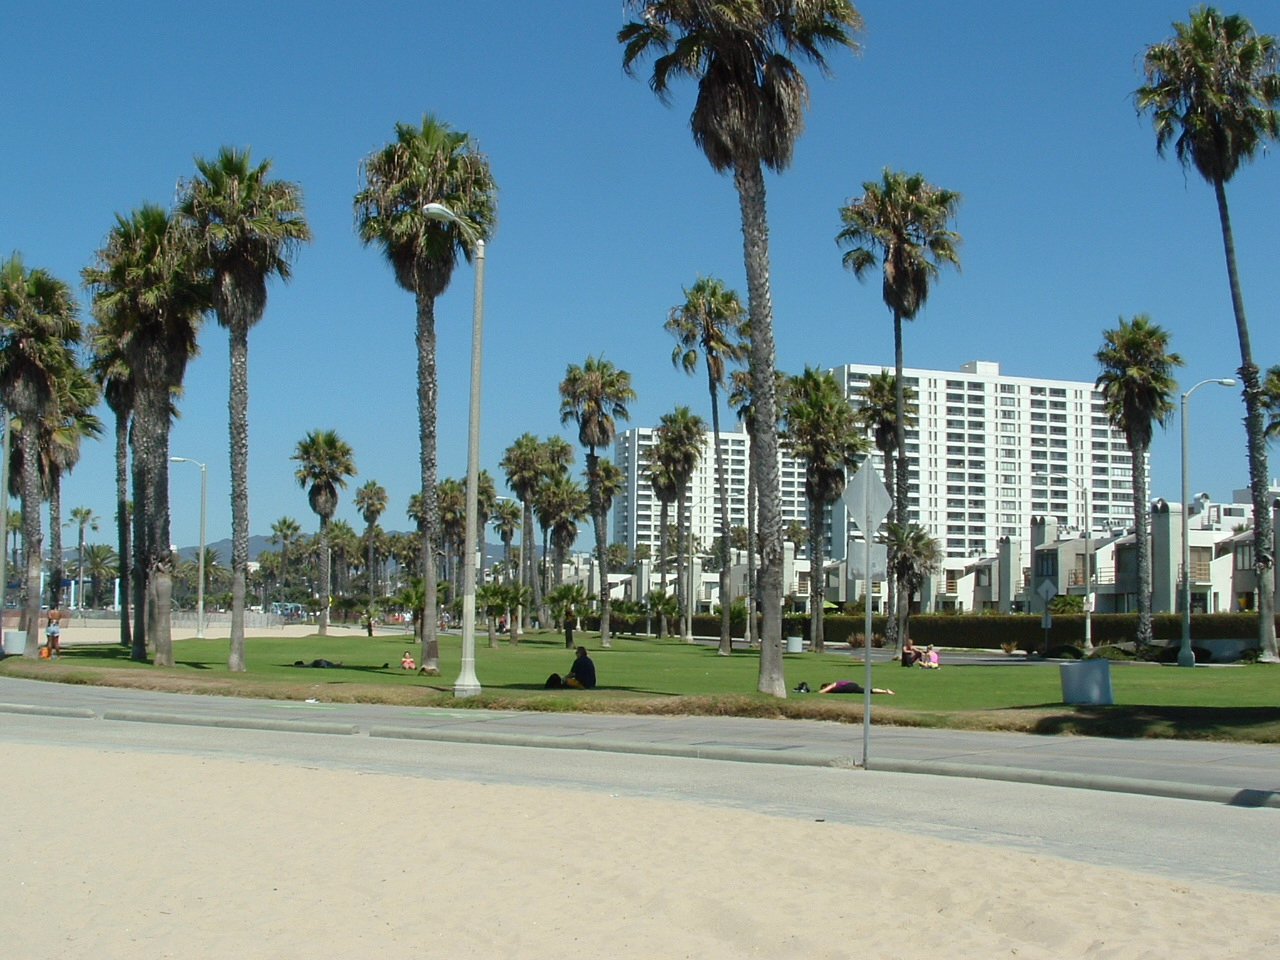 South Beach Part at Barnard Way & Speedway in Santa Monica